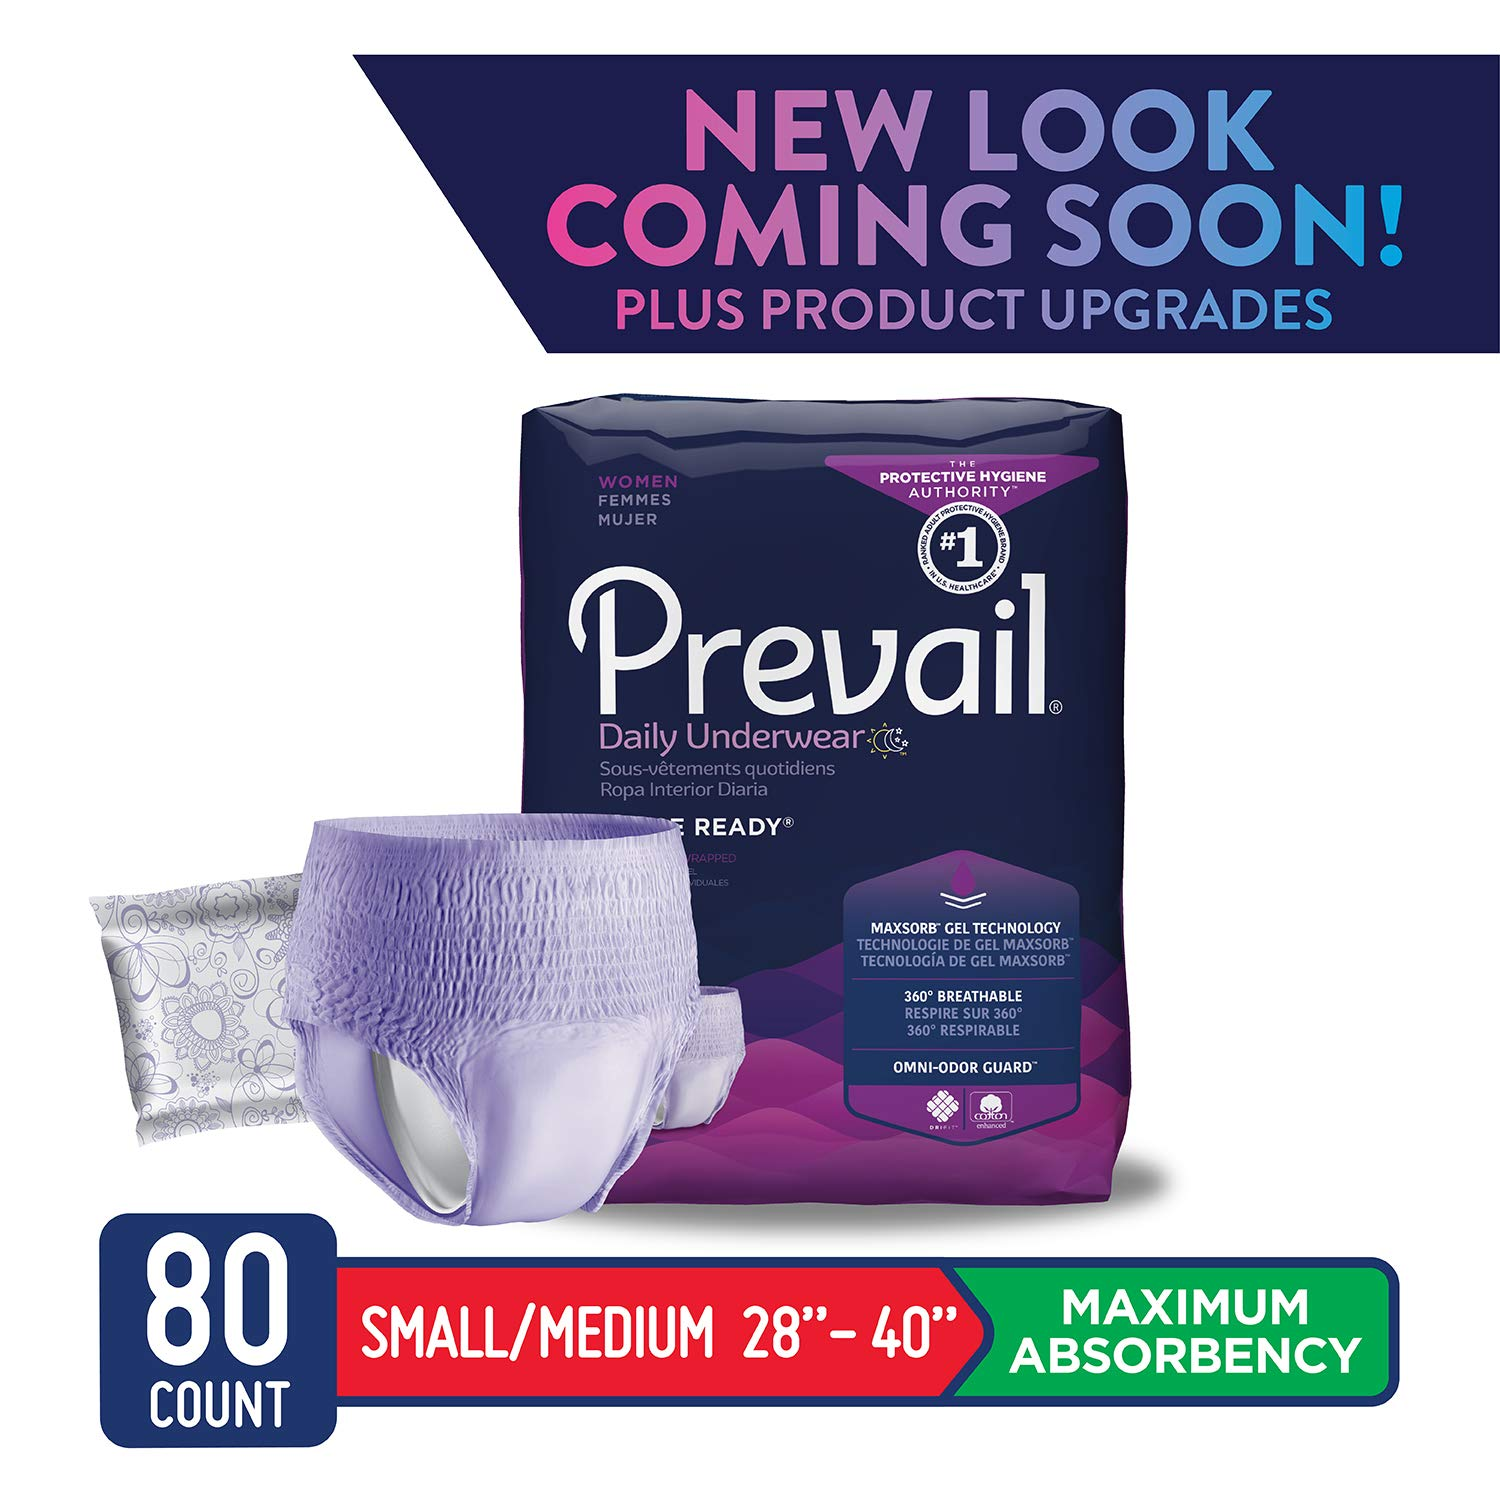 c22590a1df9c Amazon.com  Prevail PurseReady Maximum Absorbency Incontinence Underwear  for Women Small Medium 20 Count (Pack of 4) Breathable Rapid Absorption  Discreet ...